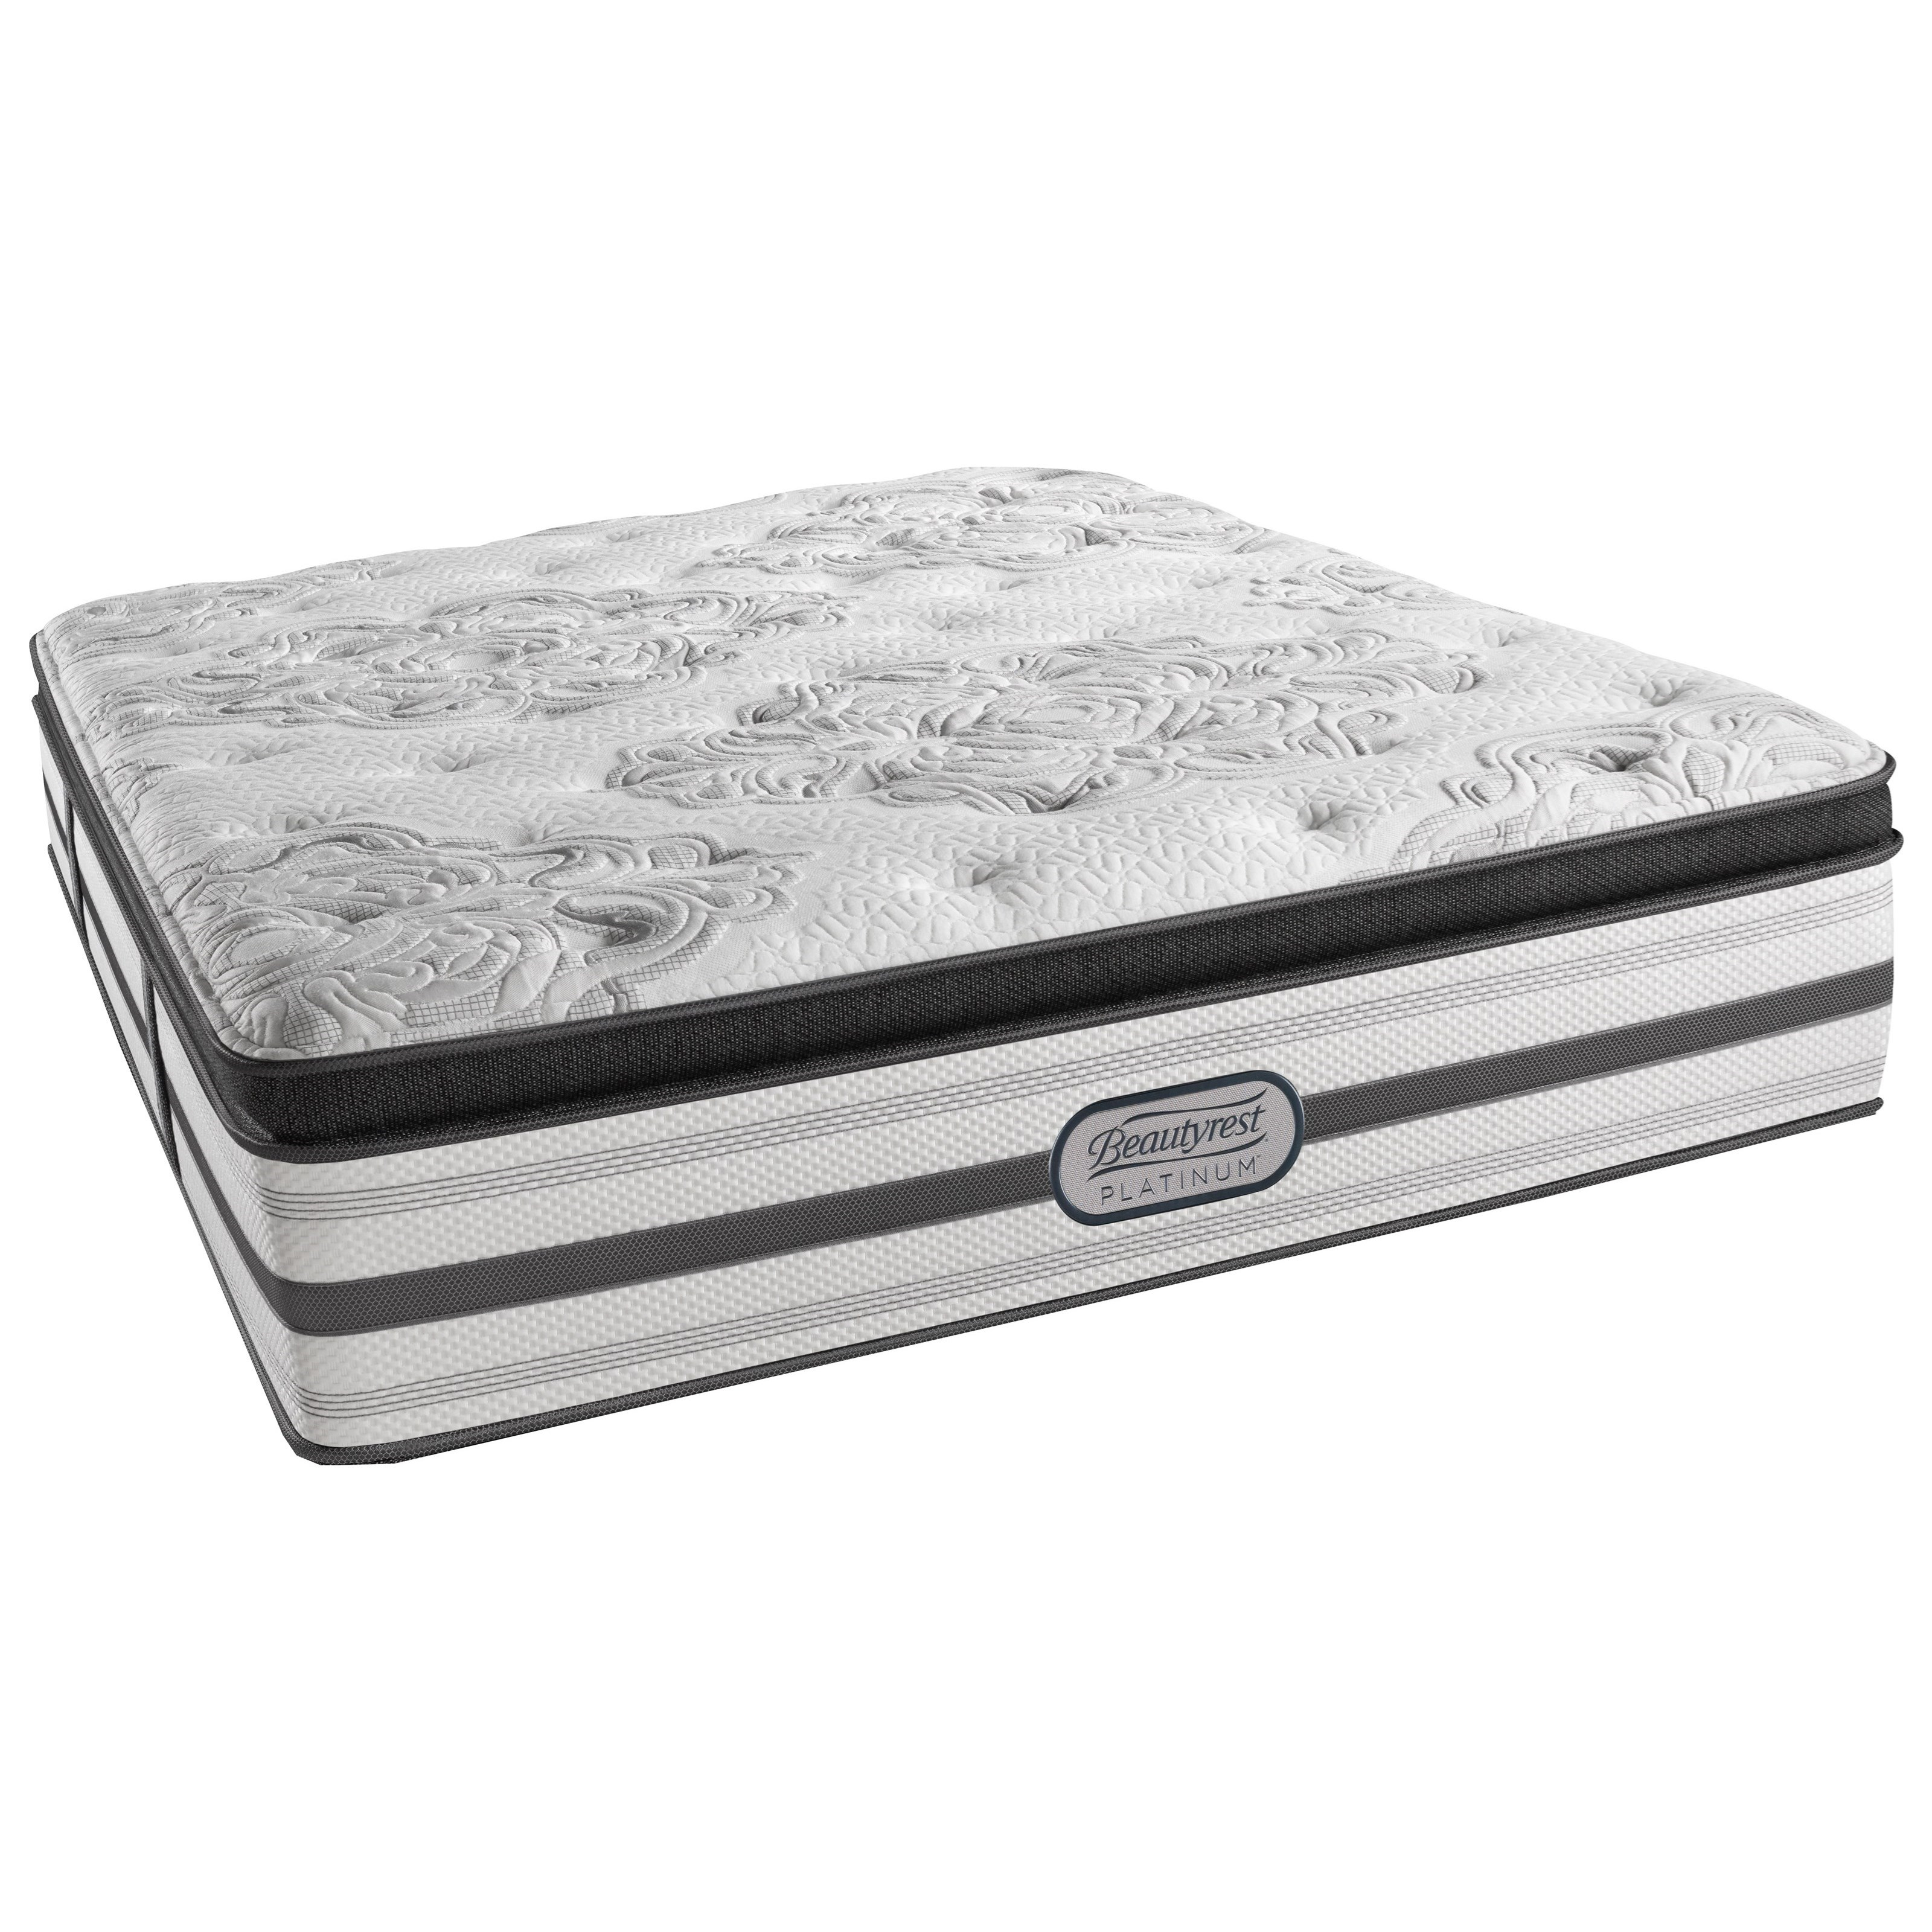 Beautyrest Platinum Gabriella Cal King Plush Pillow Top Mattress - Item Number: LV3PLPT-CK